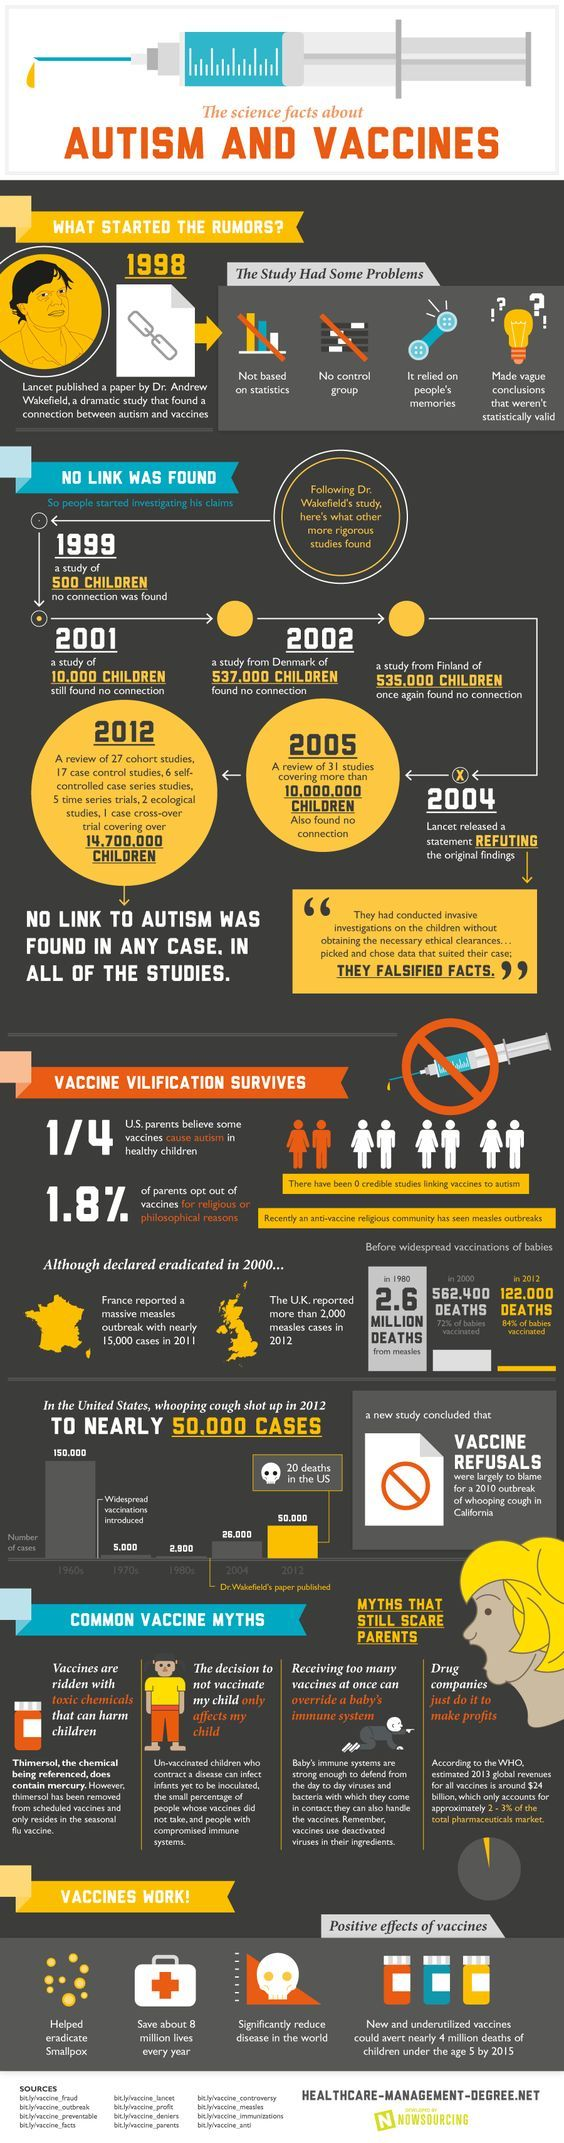 Did you know❓ Link between vaccines and autism is a myth. Source:Upworthy https://locatemotion.com/?utm_content=buffer3525a&utm_medium=social&utm_source=pinterest.com&utm_campaign=buffer #caregiver #autismcare #alzheimers #dementia #statistics #facts